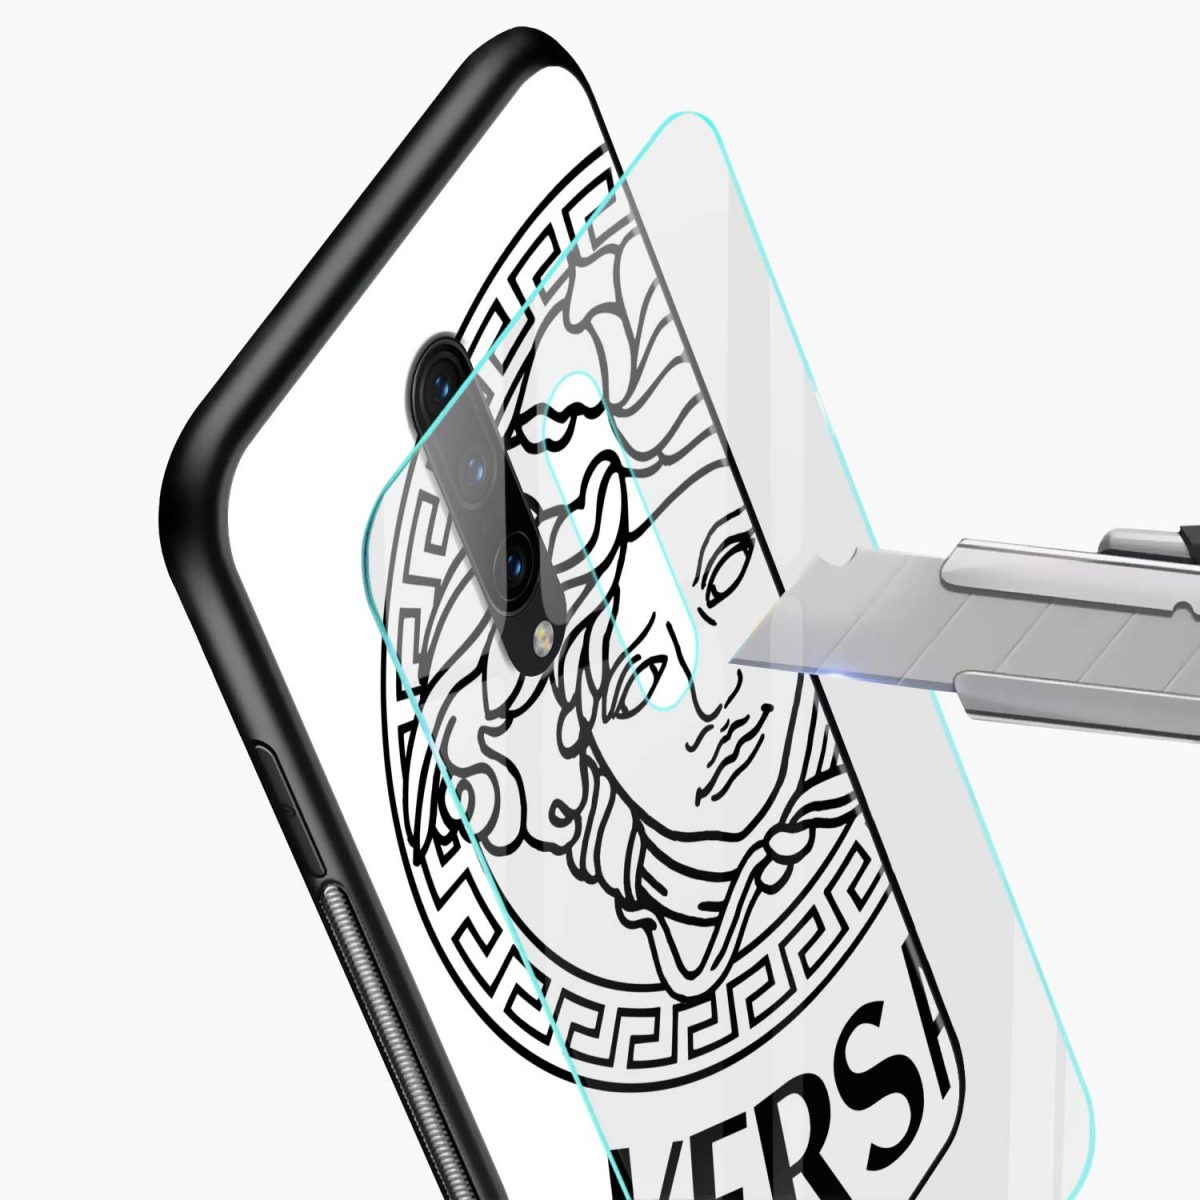 versace black white glass view oneplus 7 pro back cover